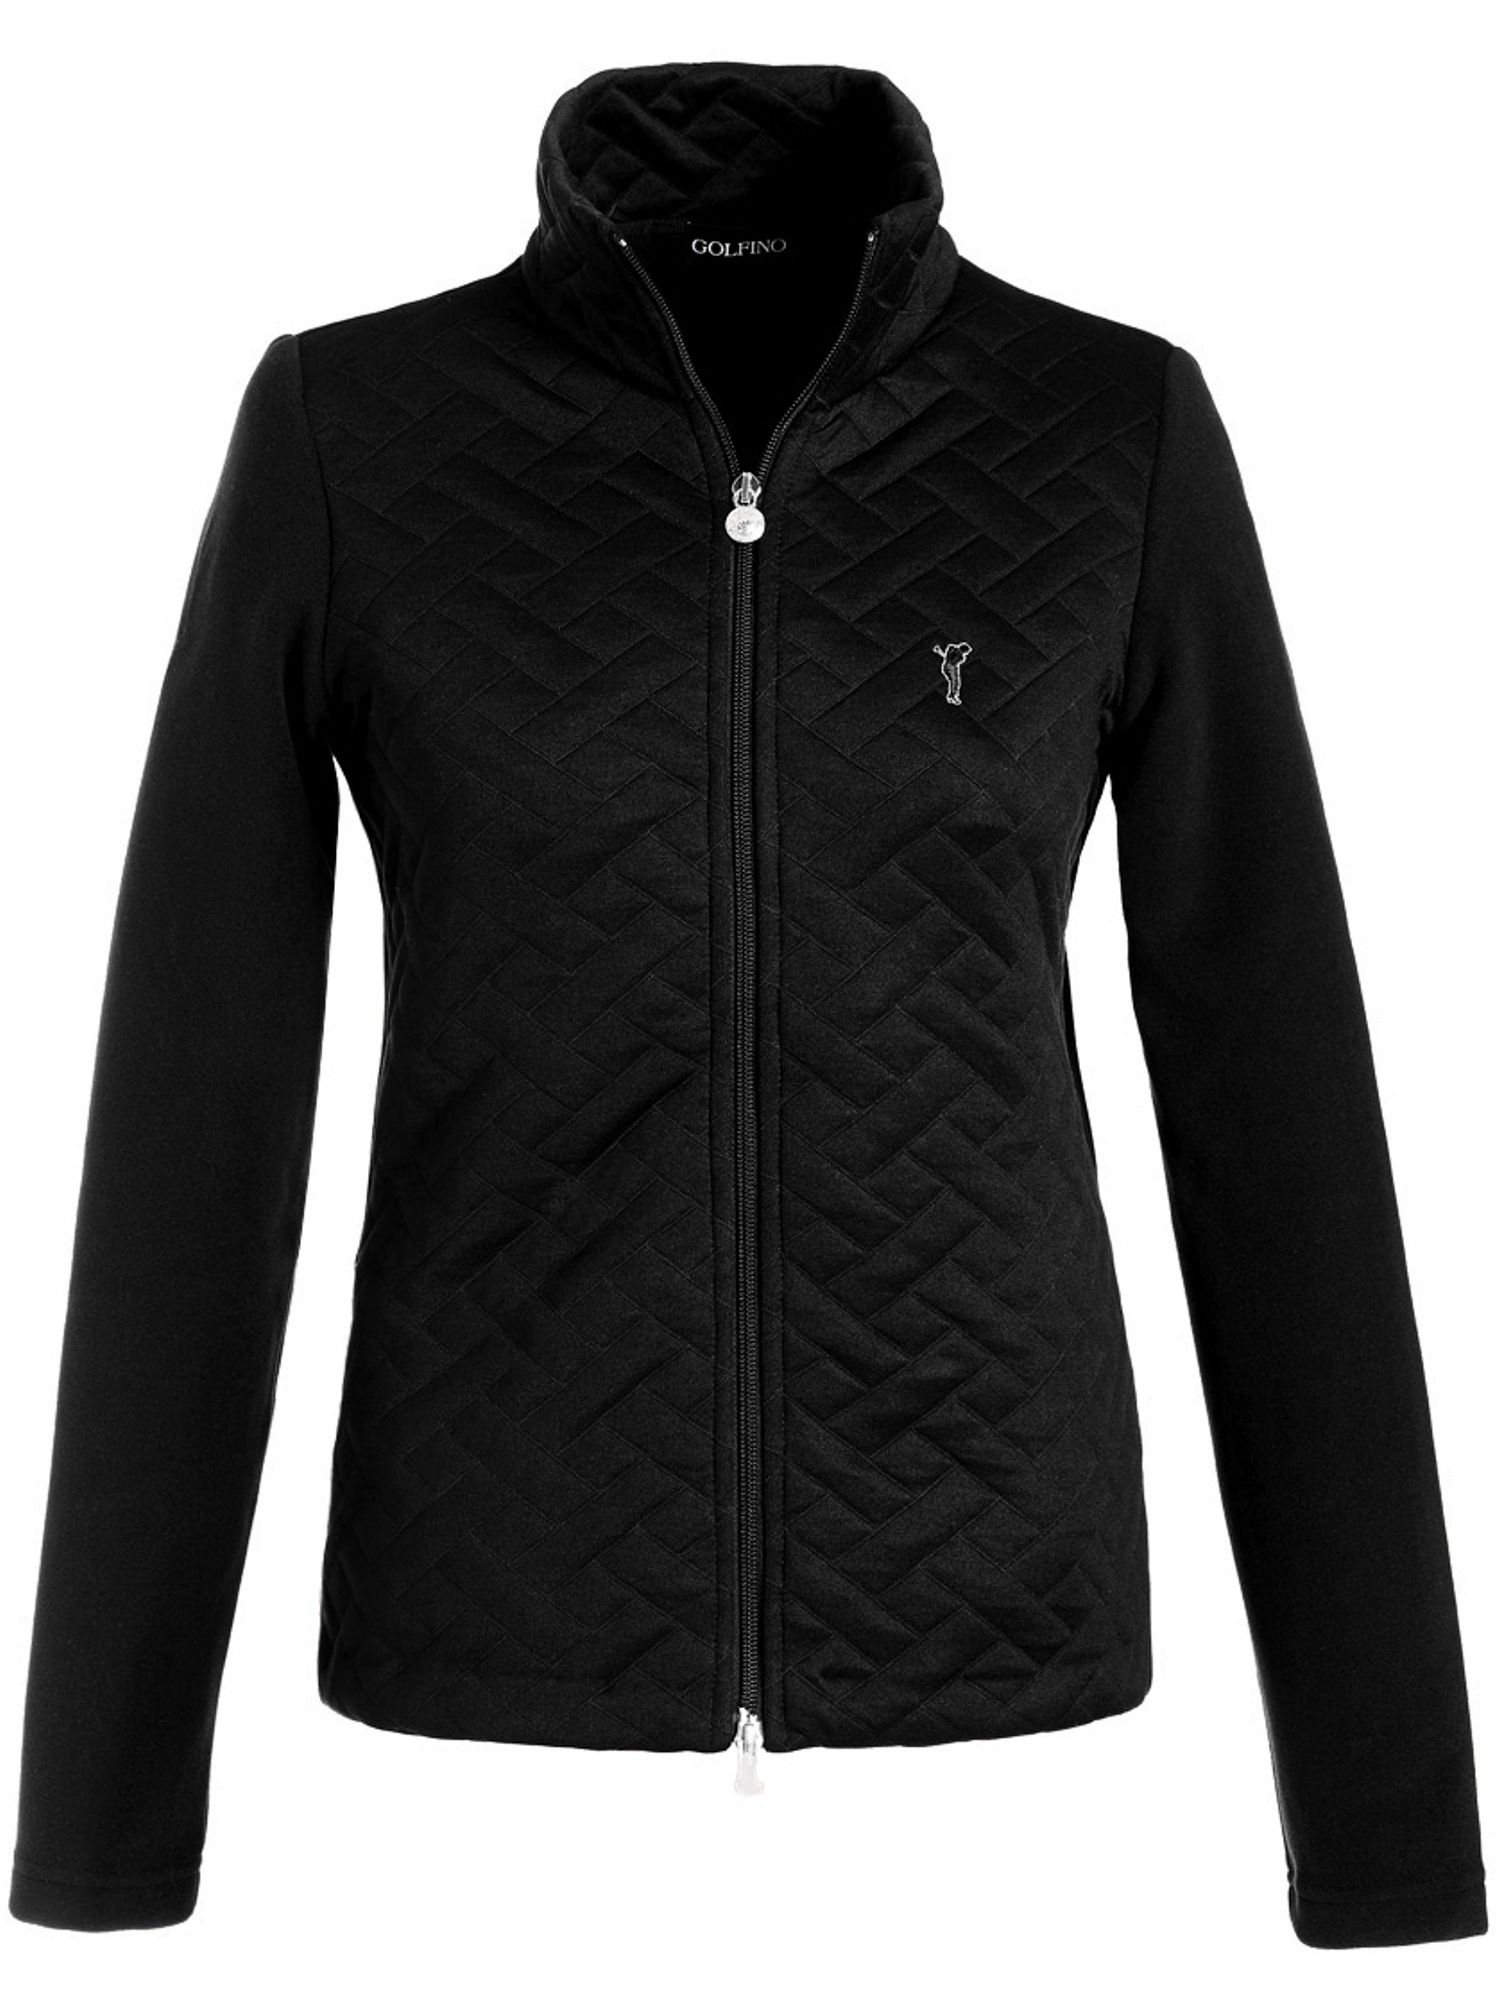 Golfino Fleece Jacket, Black